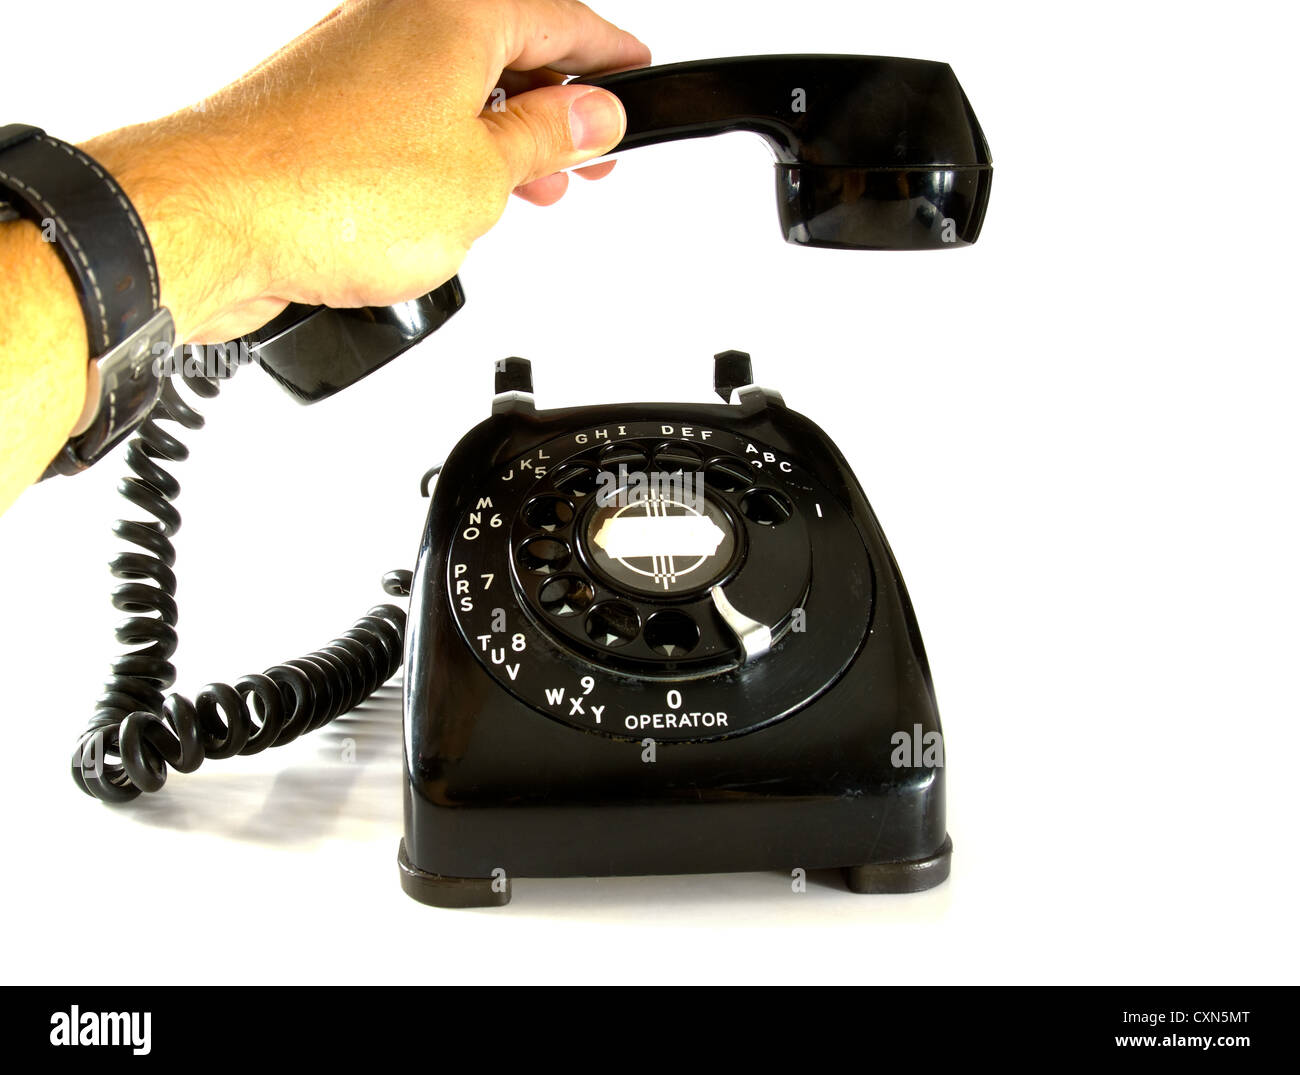 Man's hand picking up the receiver on a 1950's vintage telephone - Stock Image